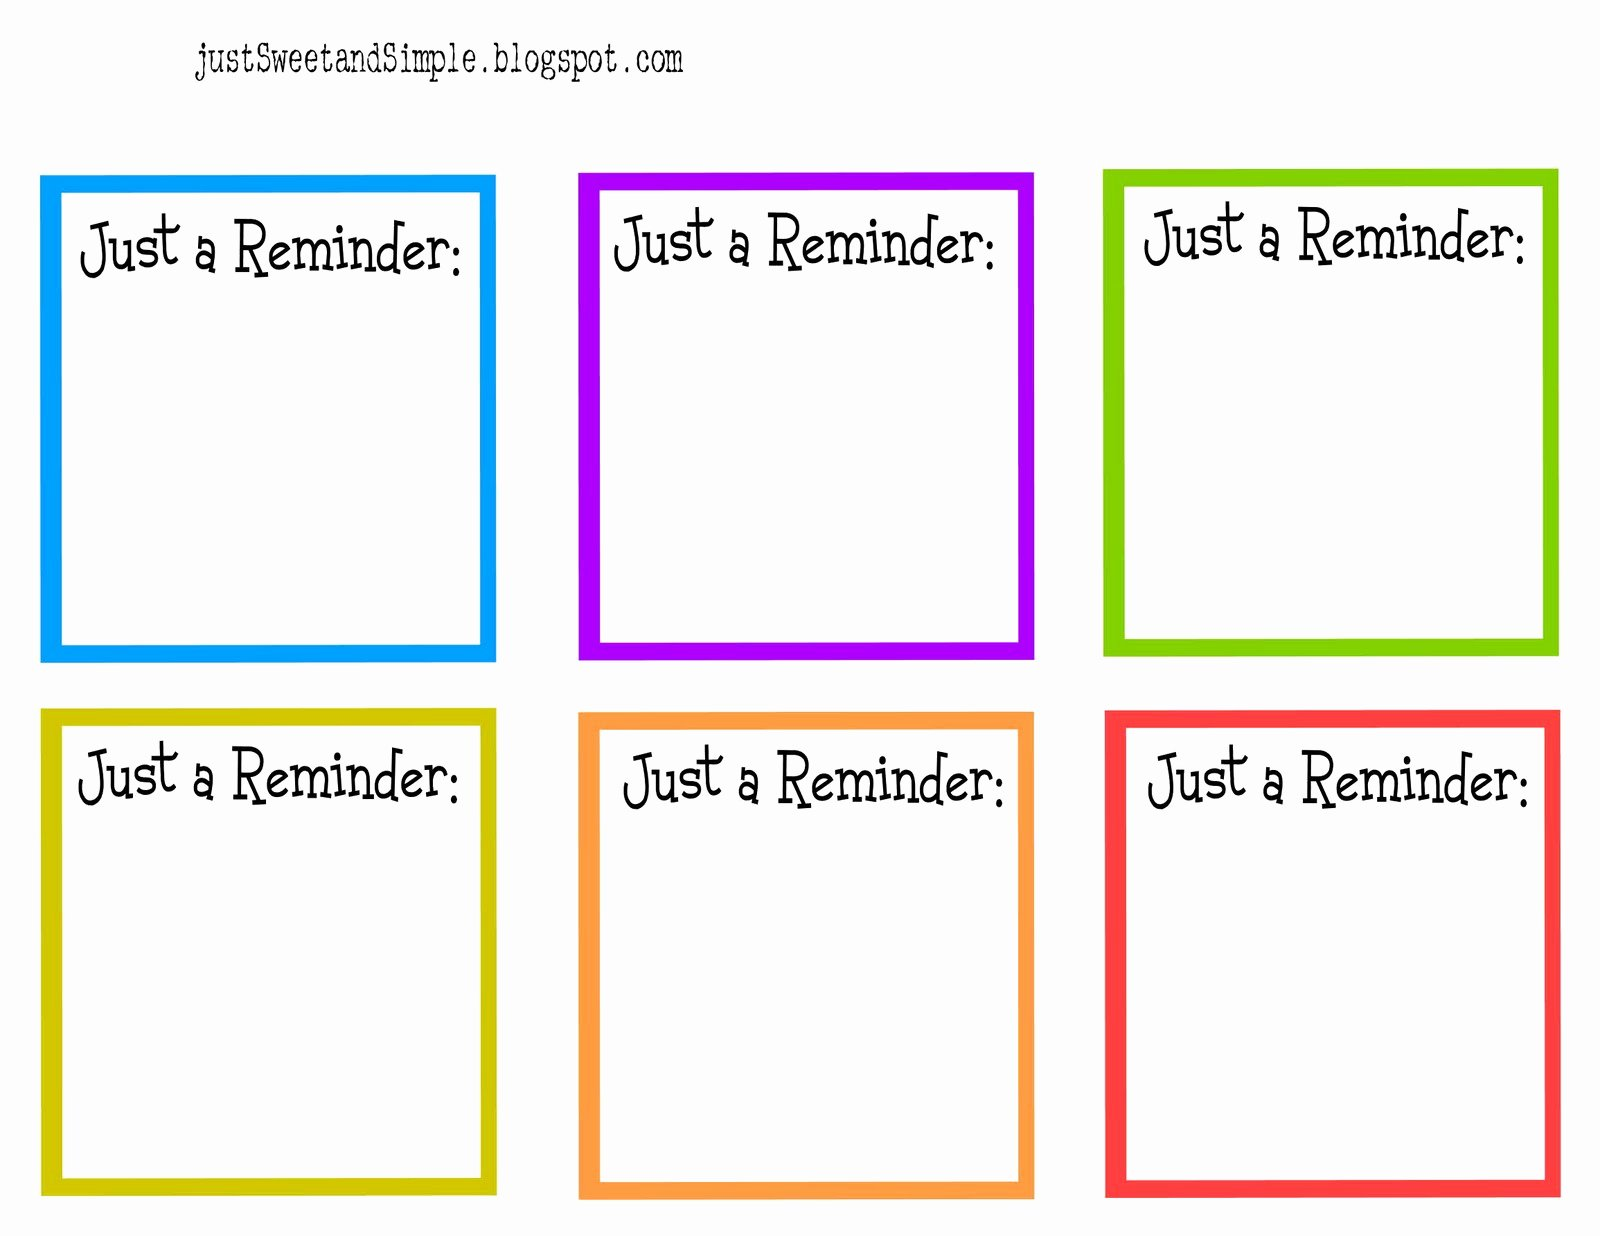 Free Printable Appointment Reminder Cards Awesome Just Sweet and Simple May 2011